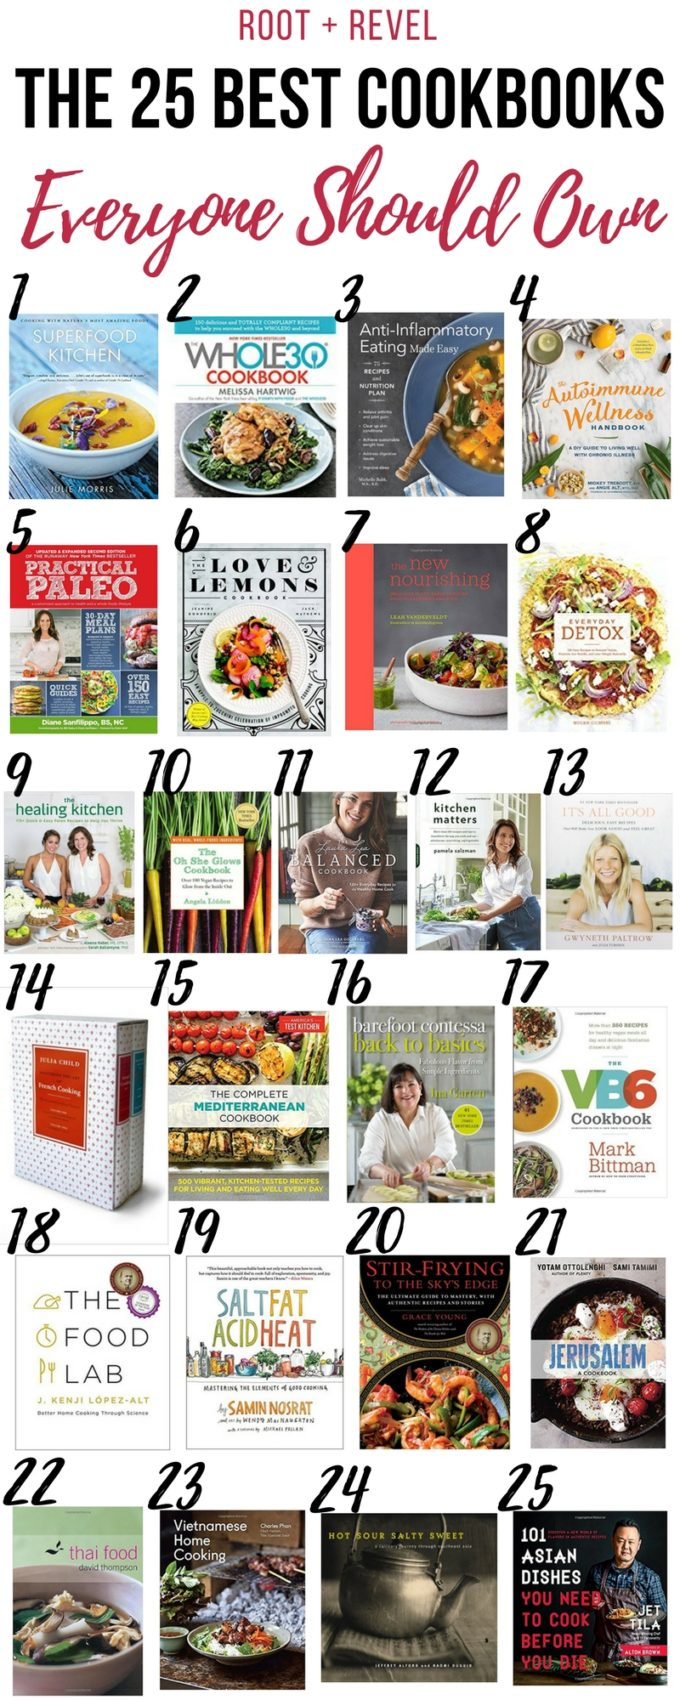 From classic French cuisine to Southeast Asian homecooking, and healthy real food and clean eating diets to beginner basics, this collection of the 25 Best Cookbooks showcases the most delicious and helpful cookbooks that everyone should own. Whether you want to learn how to make healthy food taste great, teach yourself kitchen fundamentals, or learn how to cook a new global cuisine, these are the best cookbooks to help you reach all your foodie goals!